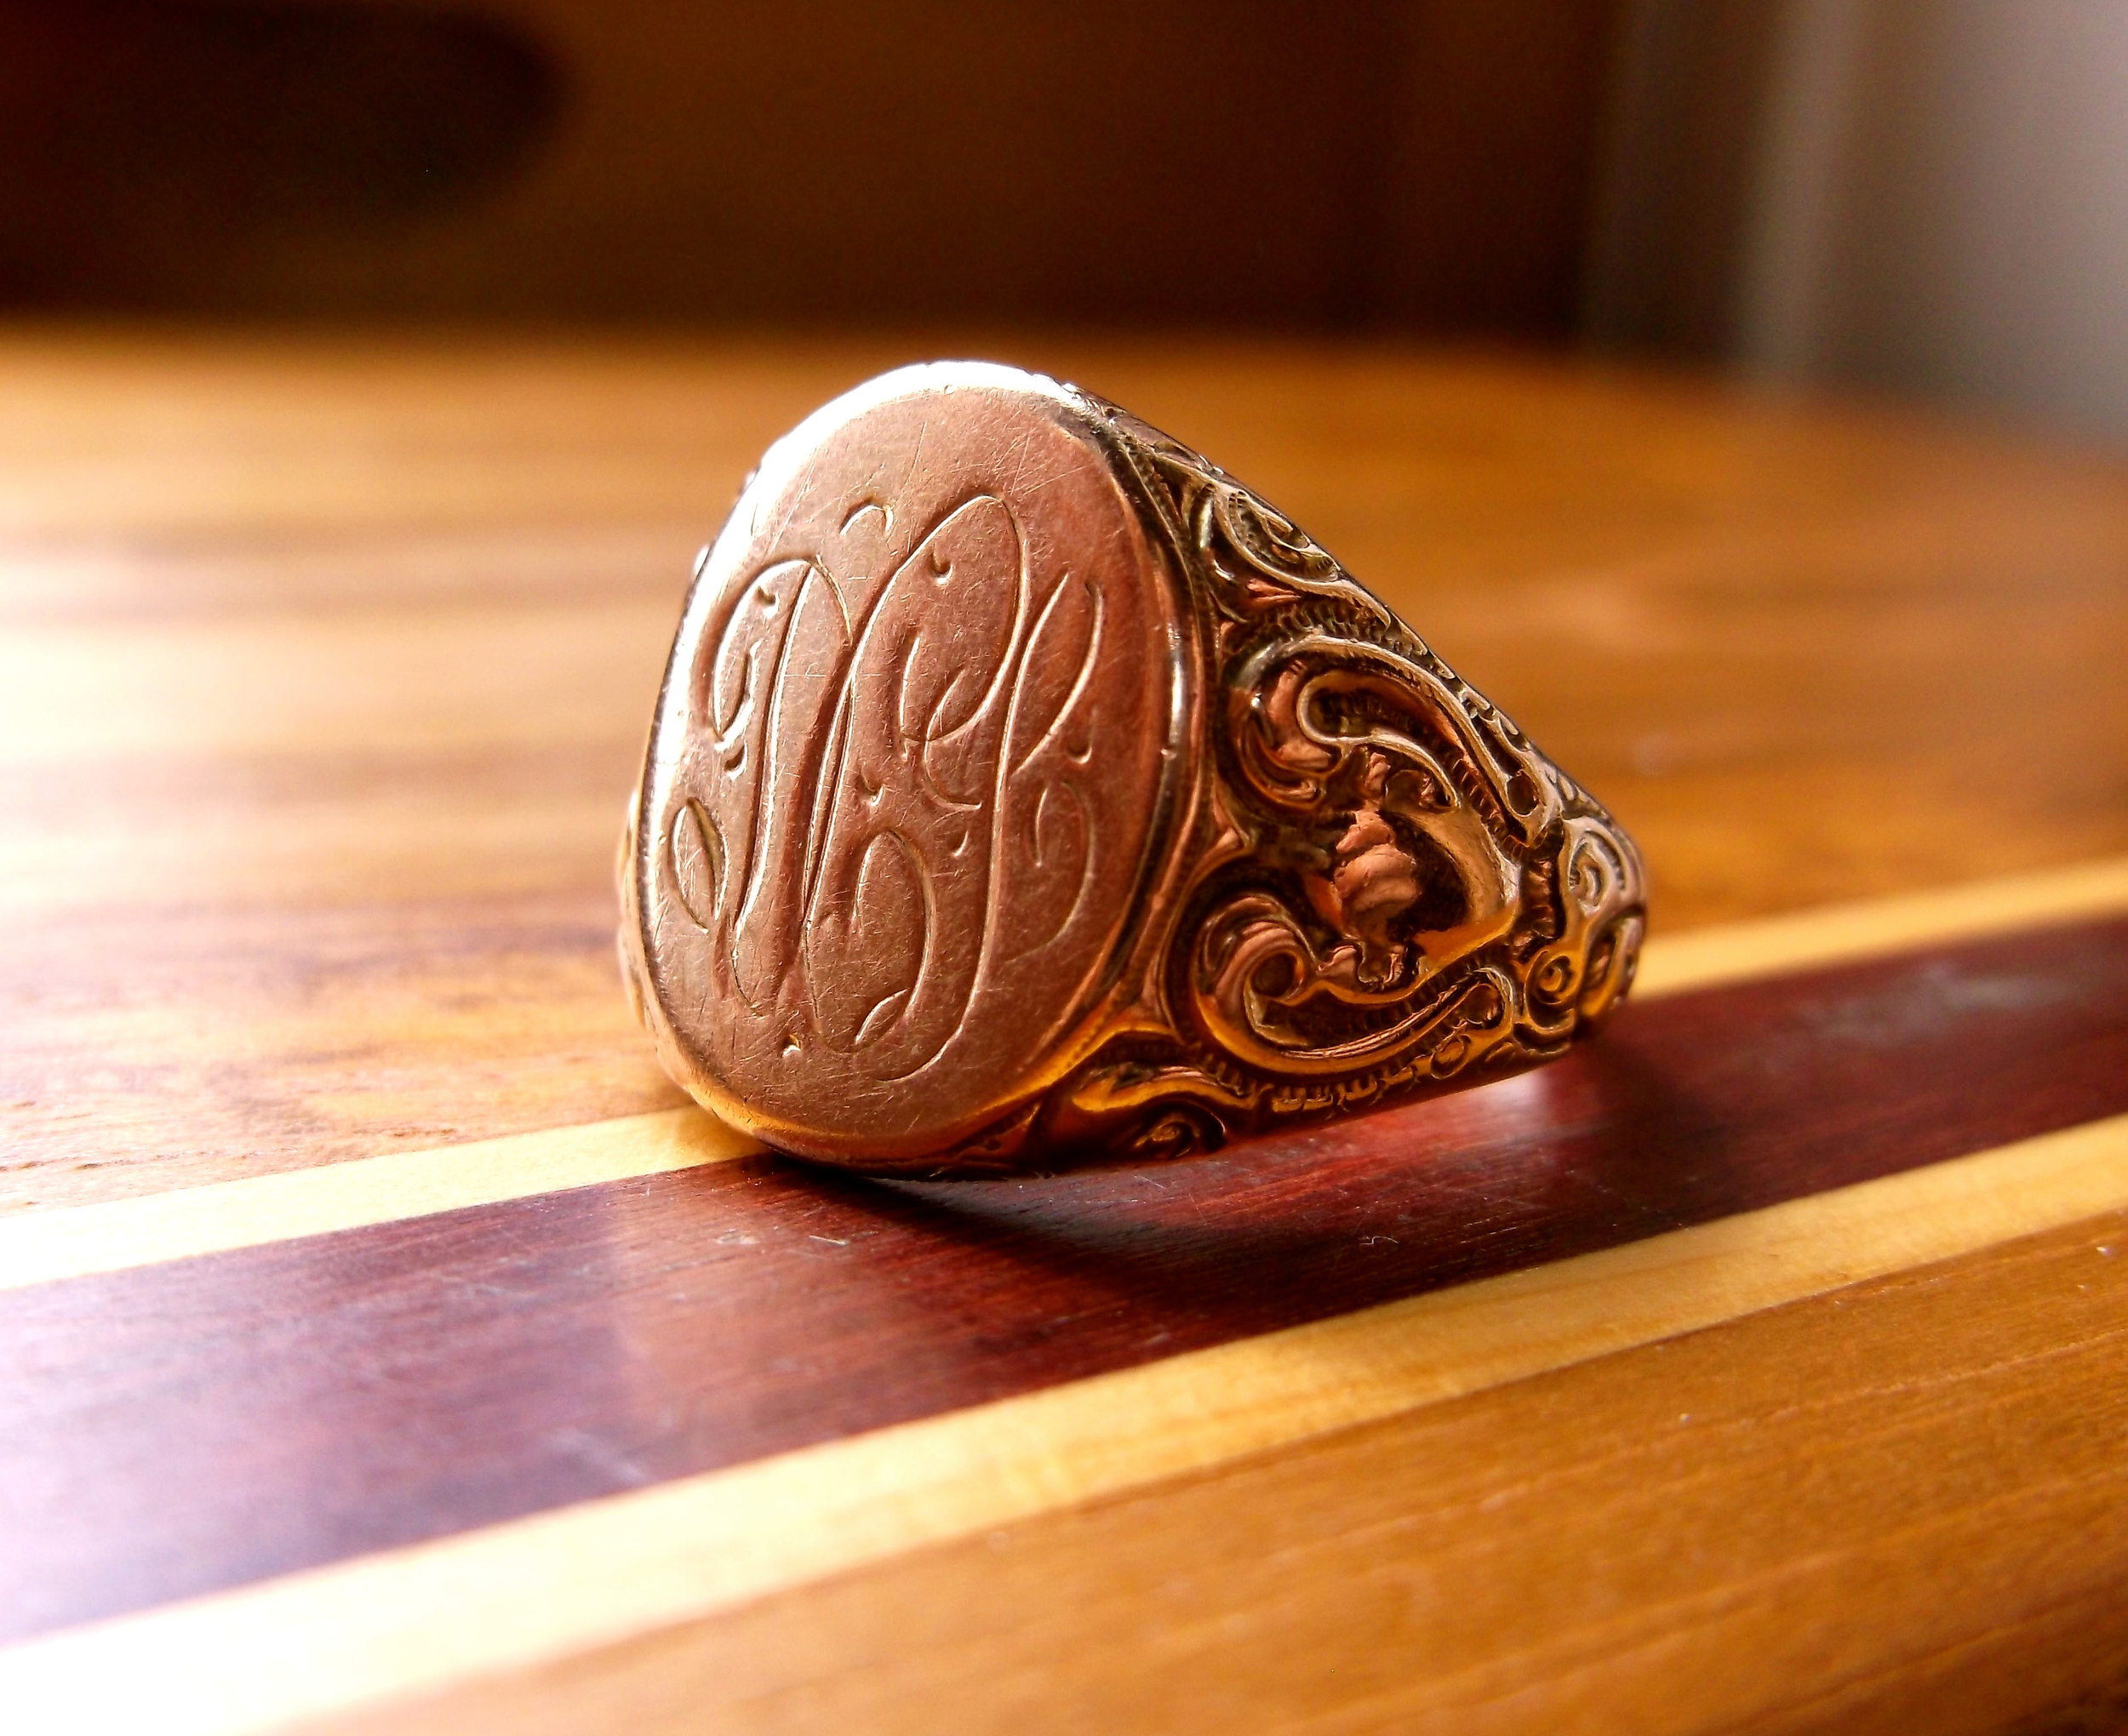 SOLD - Beautiful Victorian Era signet ring with stunning hand engraved detailing.